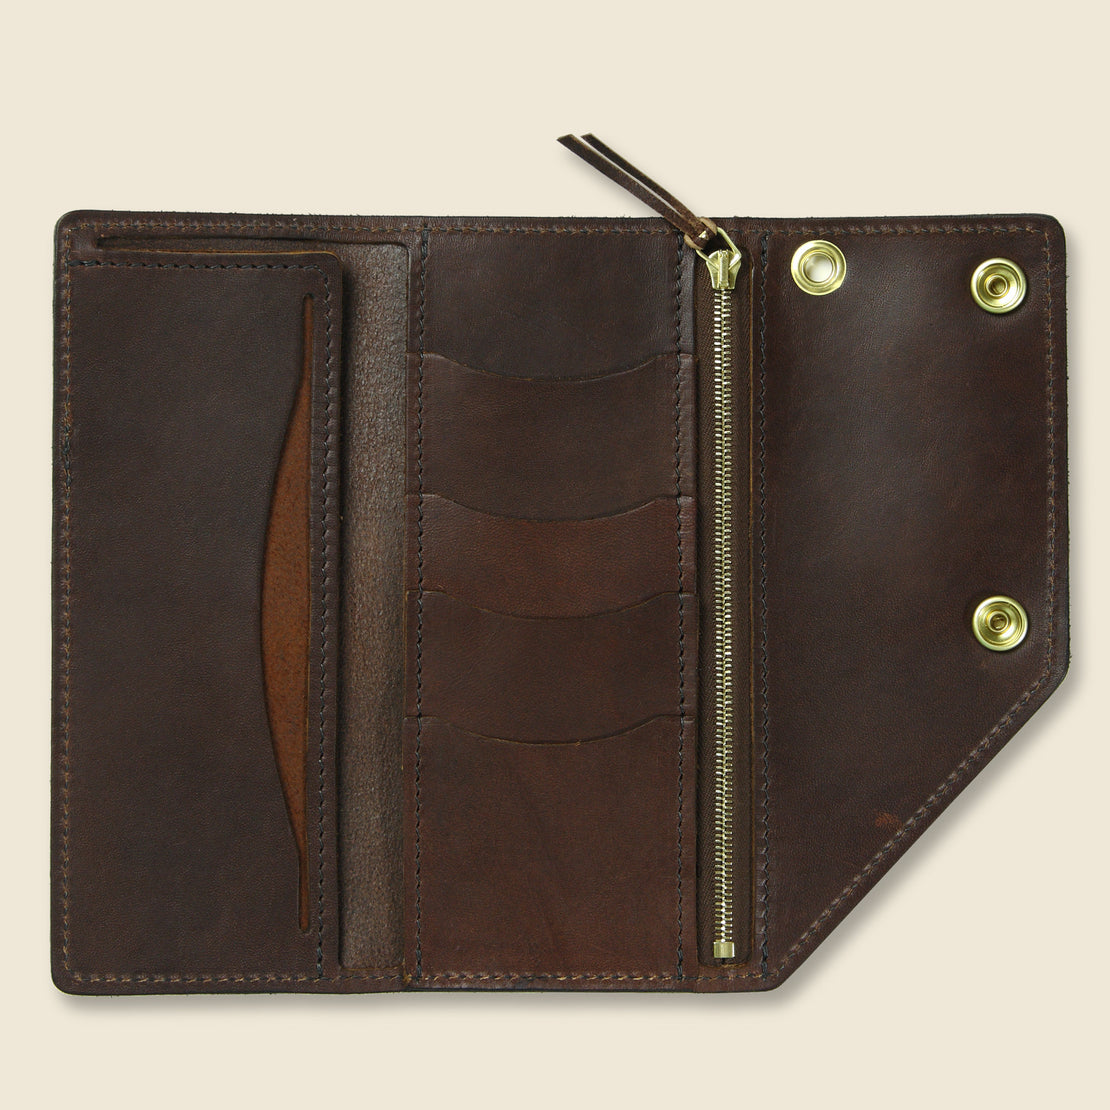 Workman Wallet - Dark Oak - Tanner - STAG Provisions - Accessories - Wallets